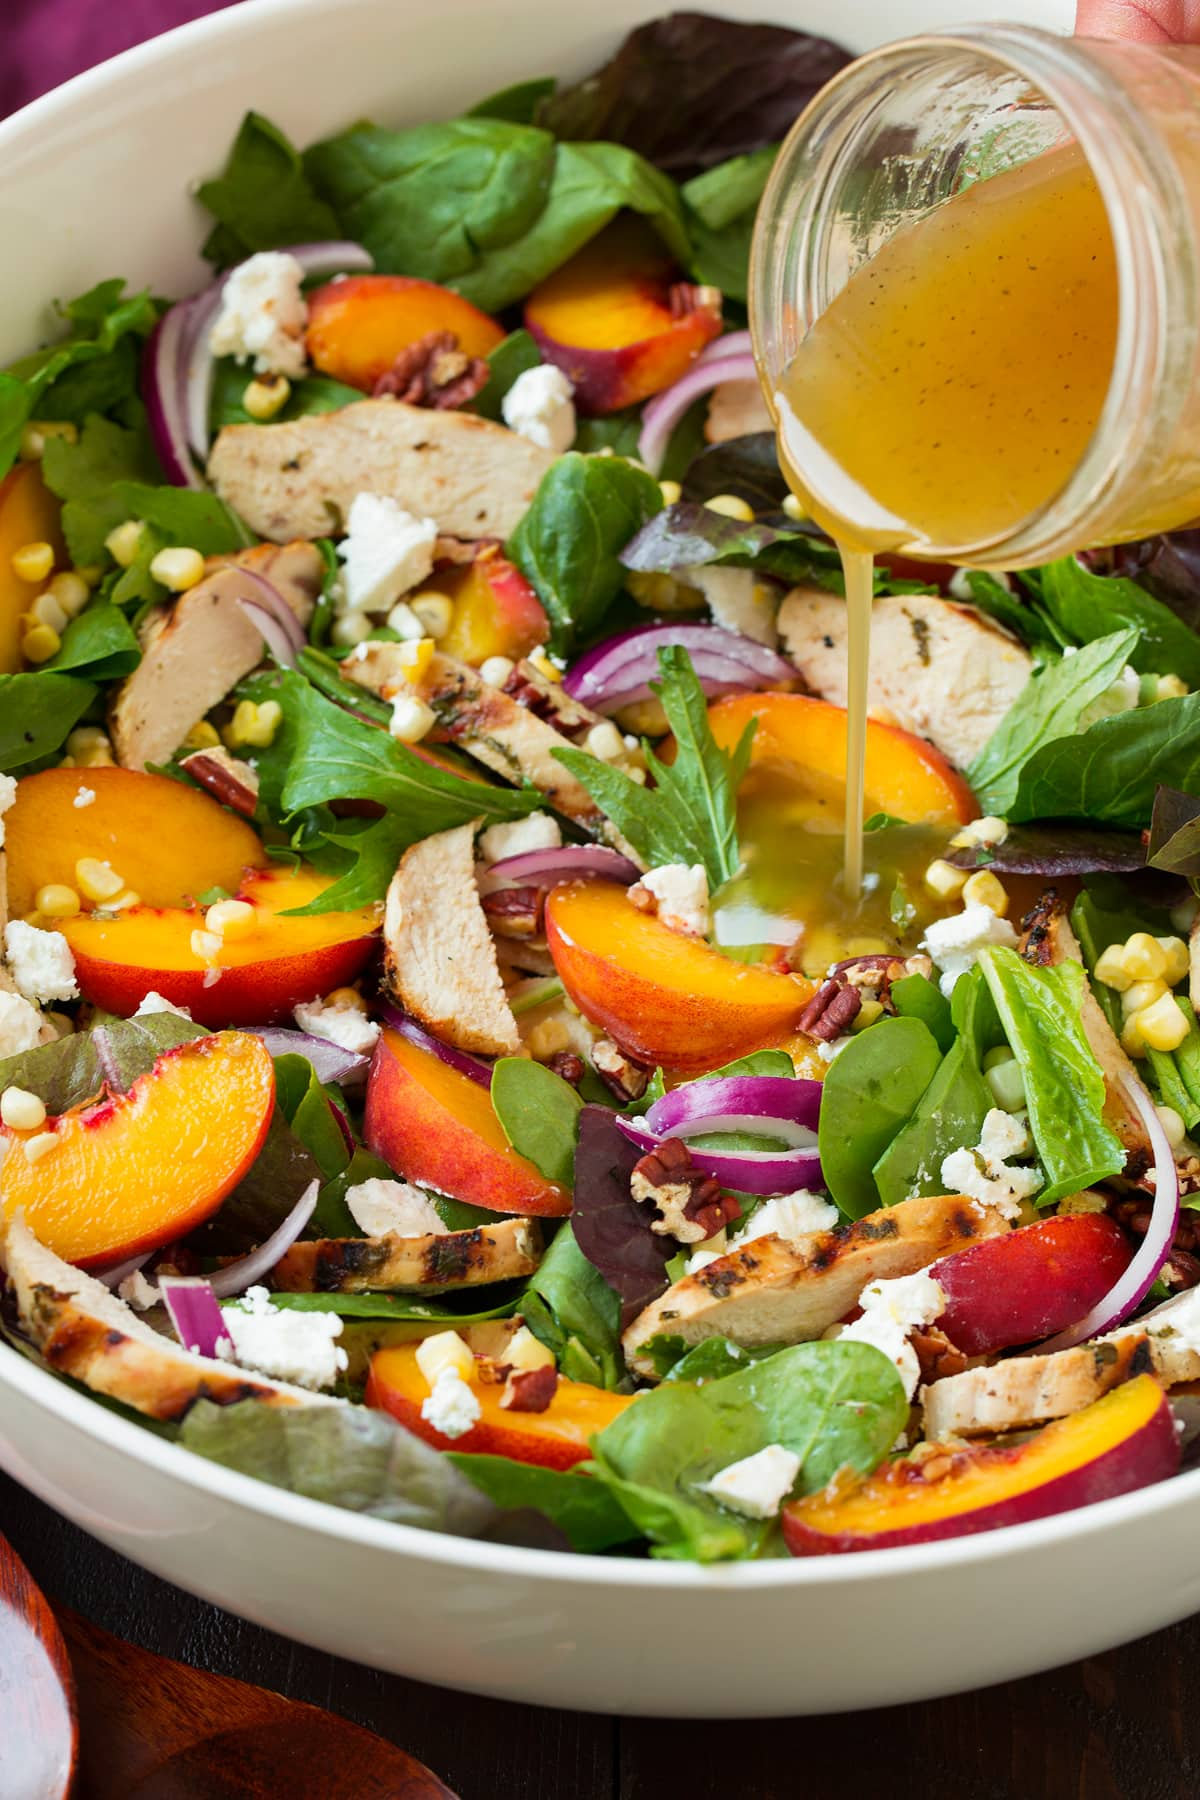 Pouring dressing over peach salad.